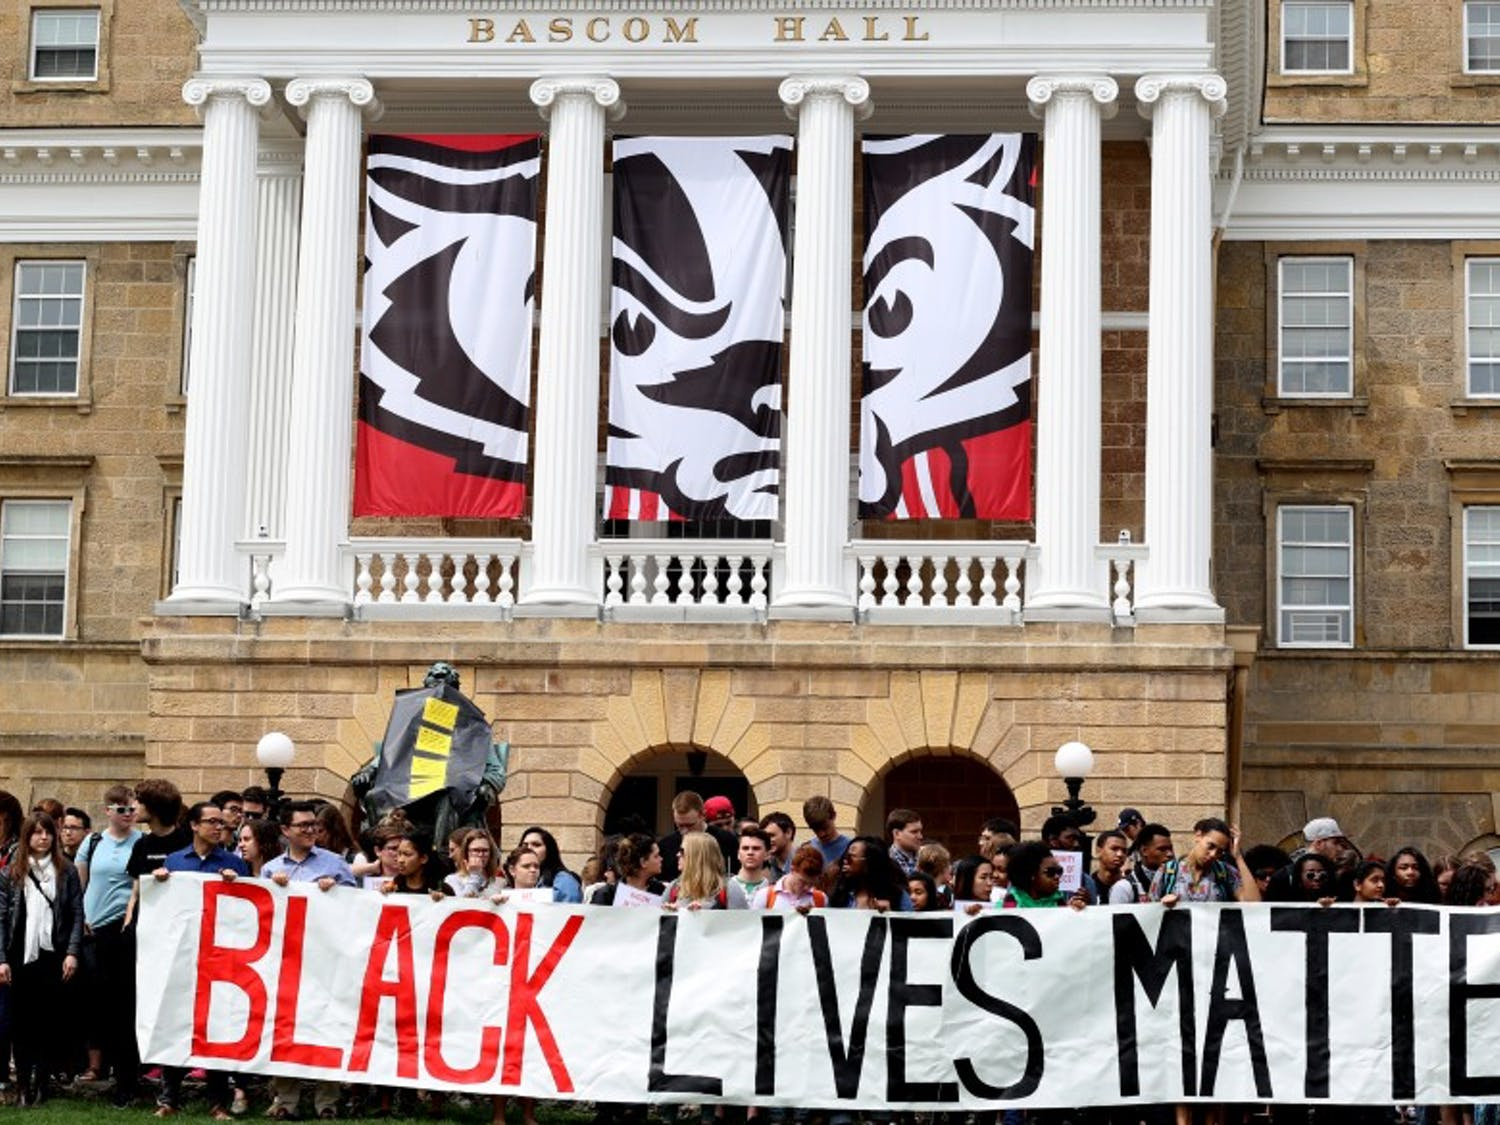 UW-Madison students, faculty and community members joined together Thursday in protest of recent incidents of discrimination on campus, including last week's arrest of a student after he was taken from a university classroom.